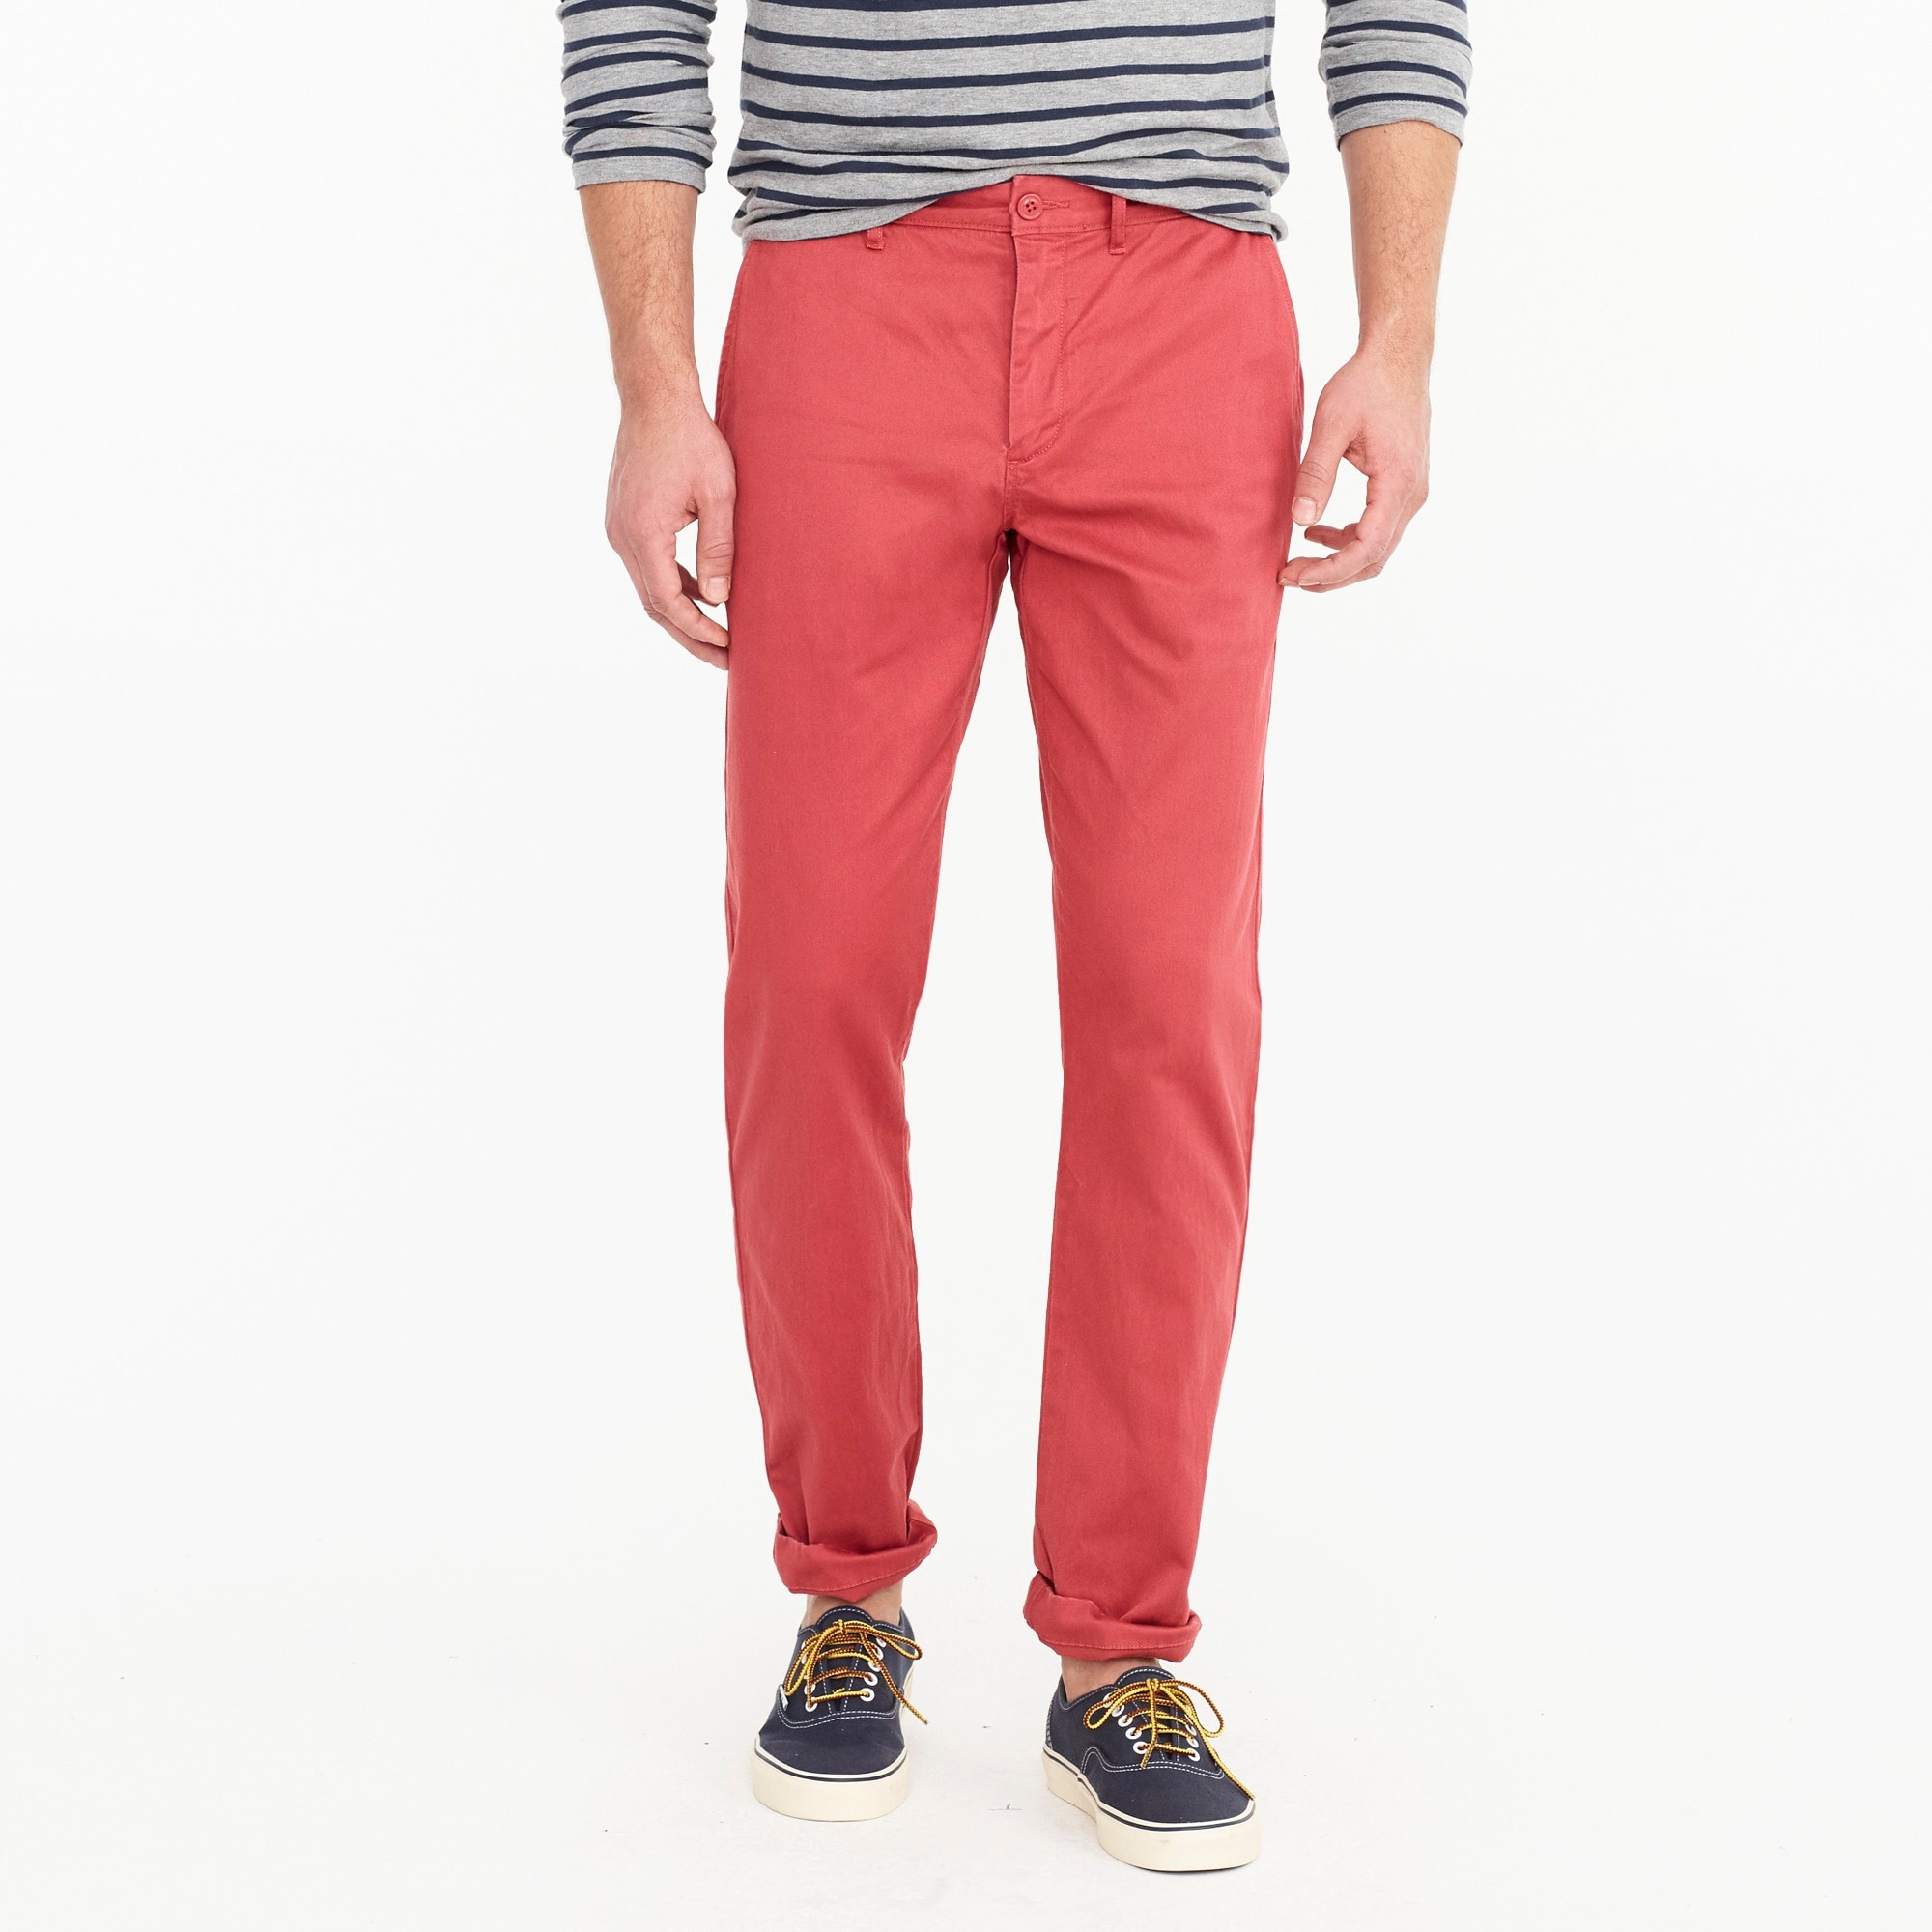 men's 770 straight-fit pant in stretch chino - men's pants